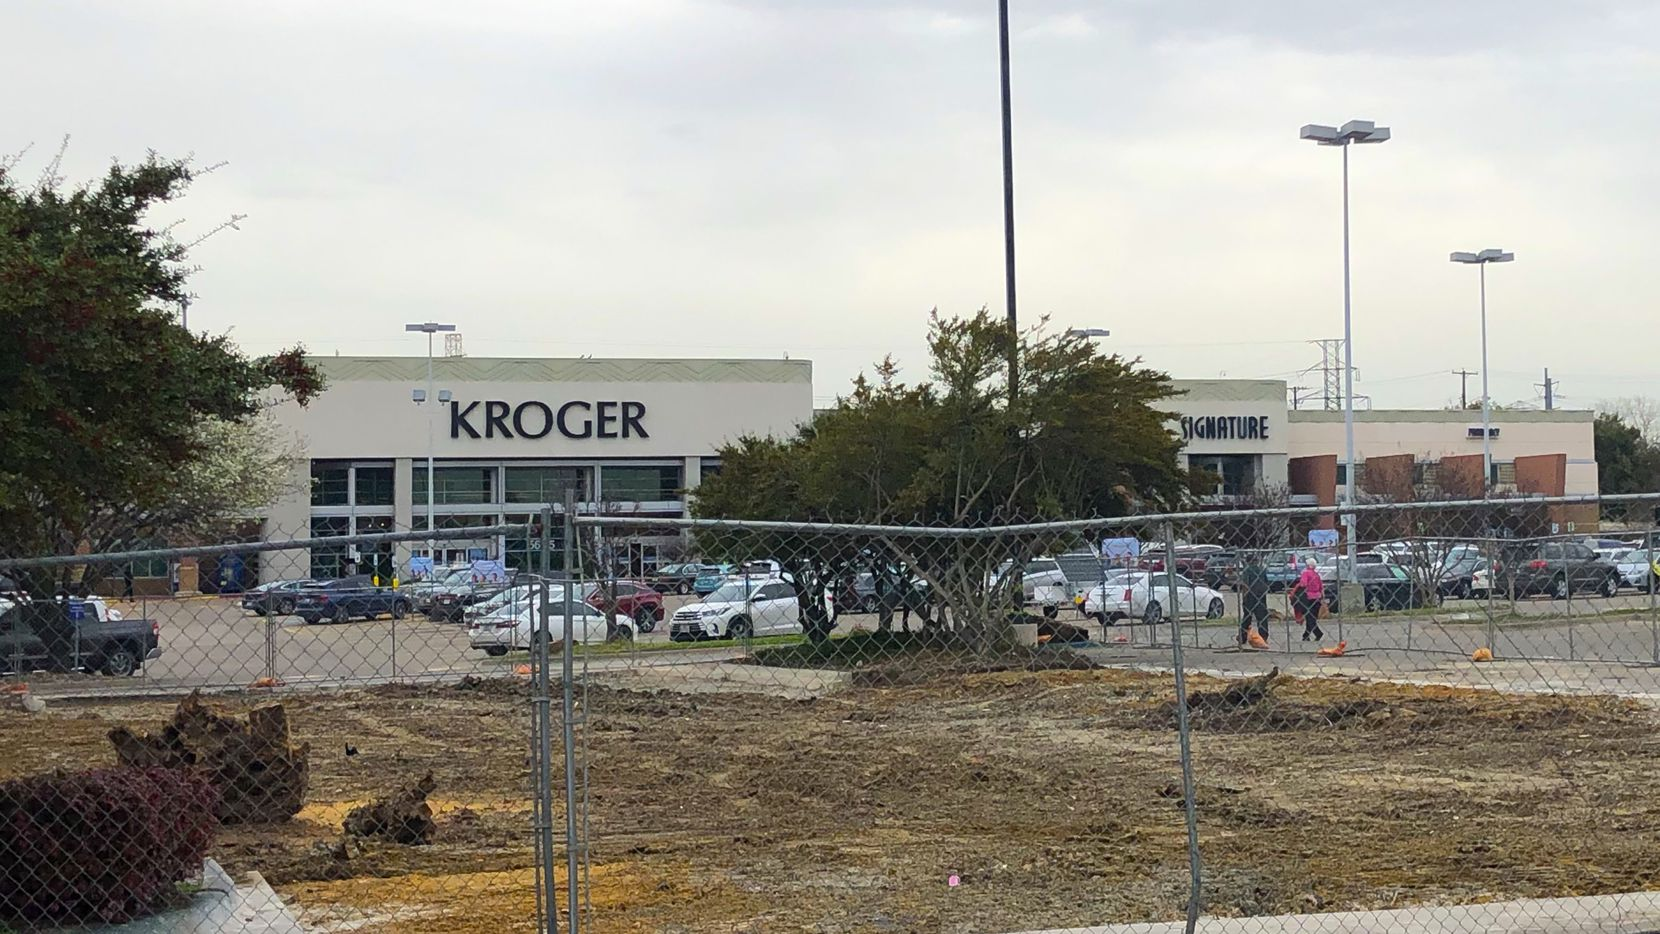 The flattened dirt in front of Kroger on E. Mockingbird Lane in Dallas used to be a Burger Street.